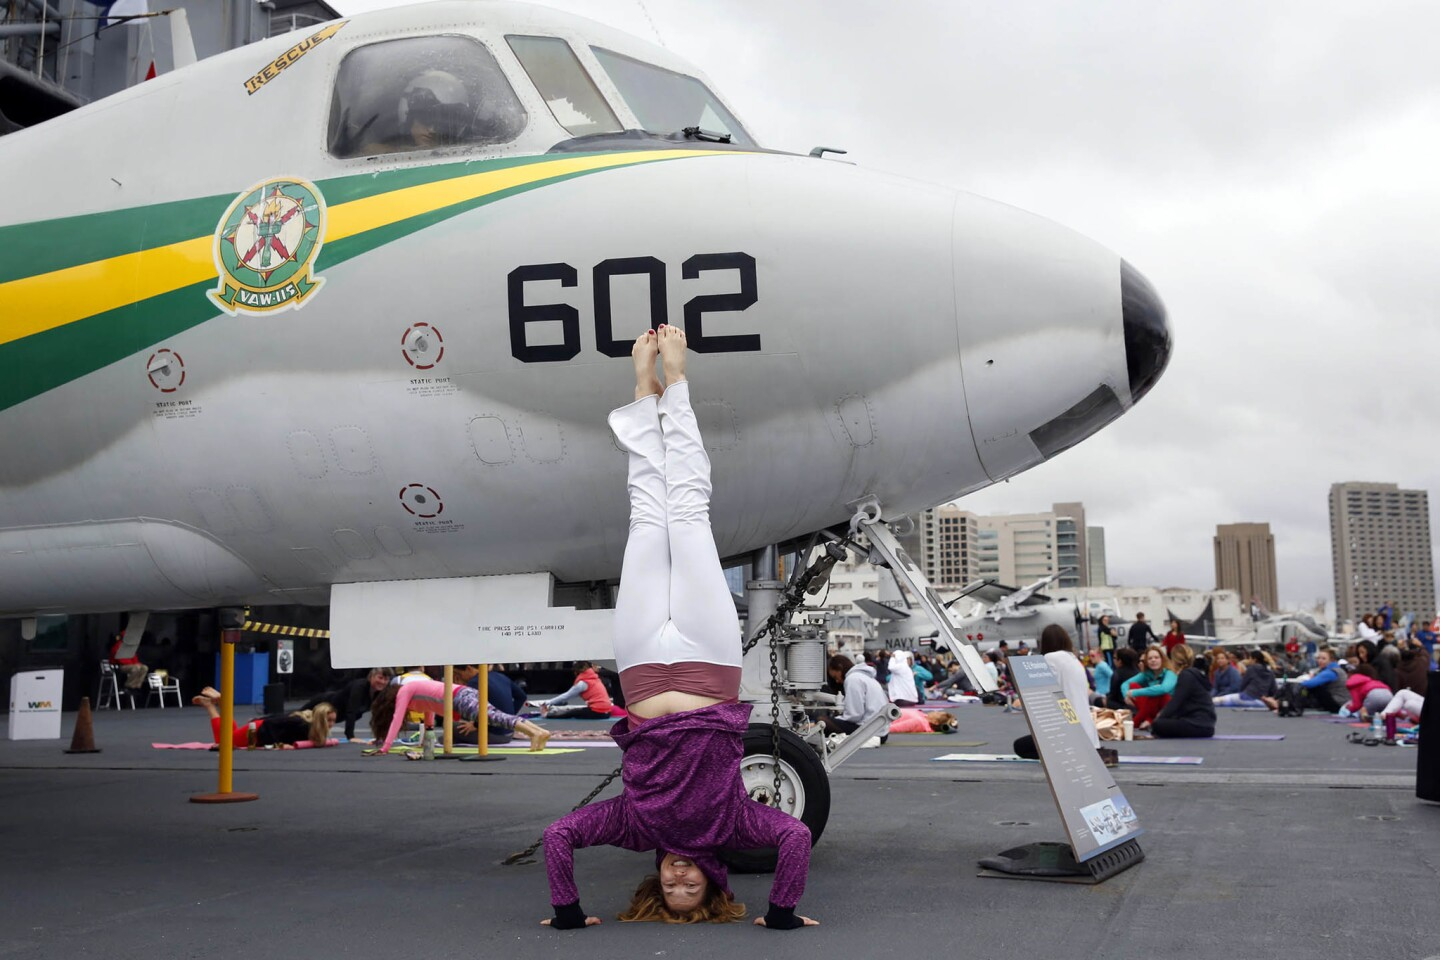 "2717199_sd_pac_yoga_midway_NL San Diego, CA May 6, 2017 Hundreds of yogis gathered for 4th annual ""Yoga on the Midway, a free hour-long class presented by Scripps Health and the Downtown San Diego Partnership. Despite the brisk temperatures and overcast conditions more than 700 participants were led by Amy Caldwell of Yoga One studio. © 2017 Nancee E. Lewis / Nancee Lewis Photography. No other reproduction allow with out consent of licensor. Permission for advertising reproduction required."